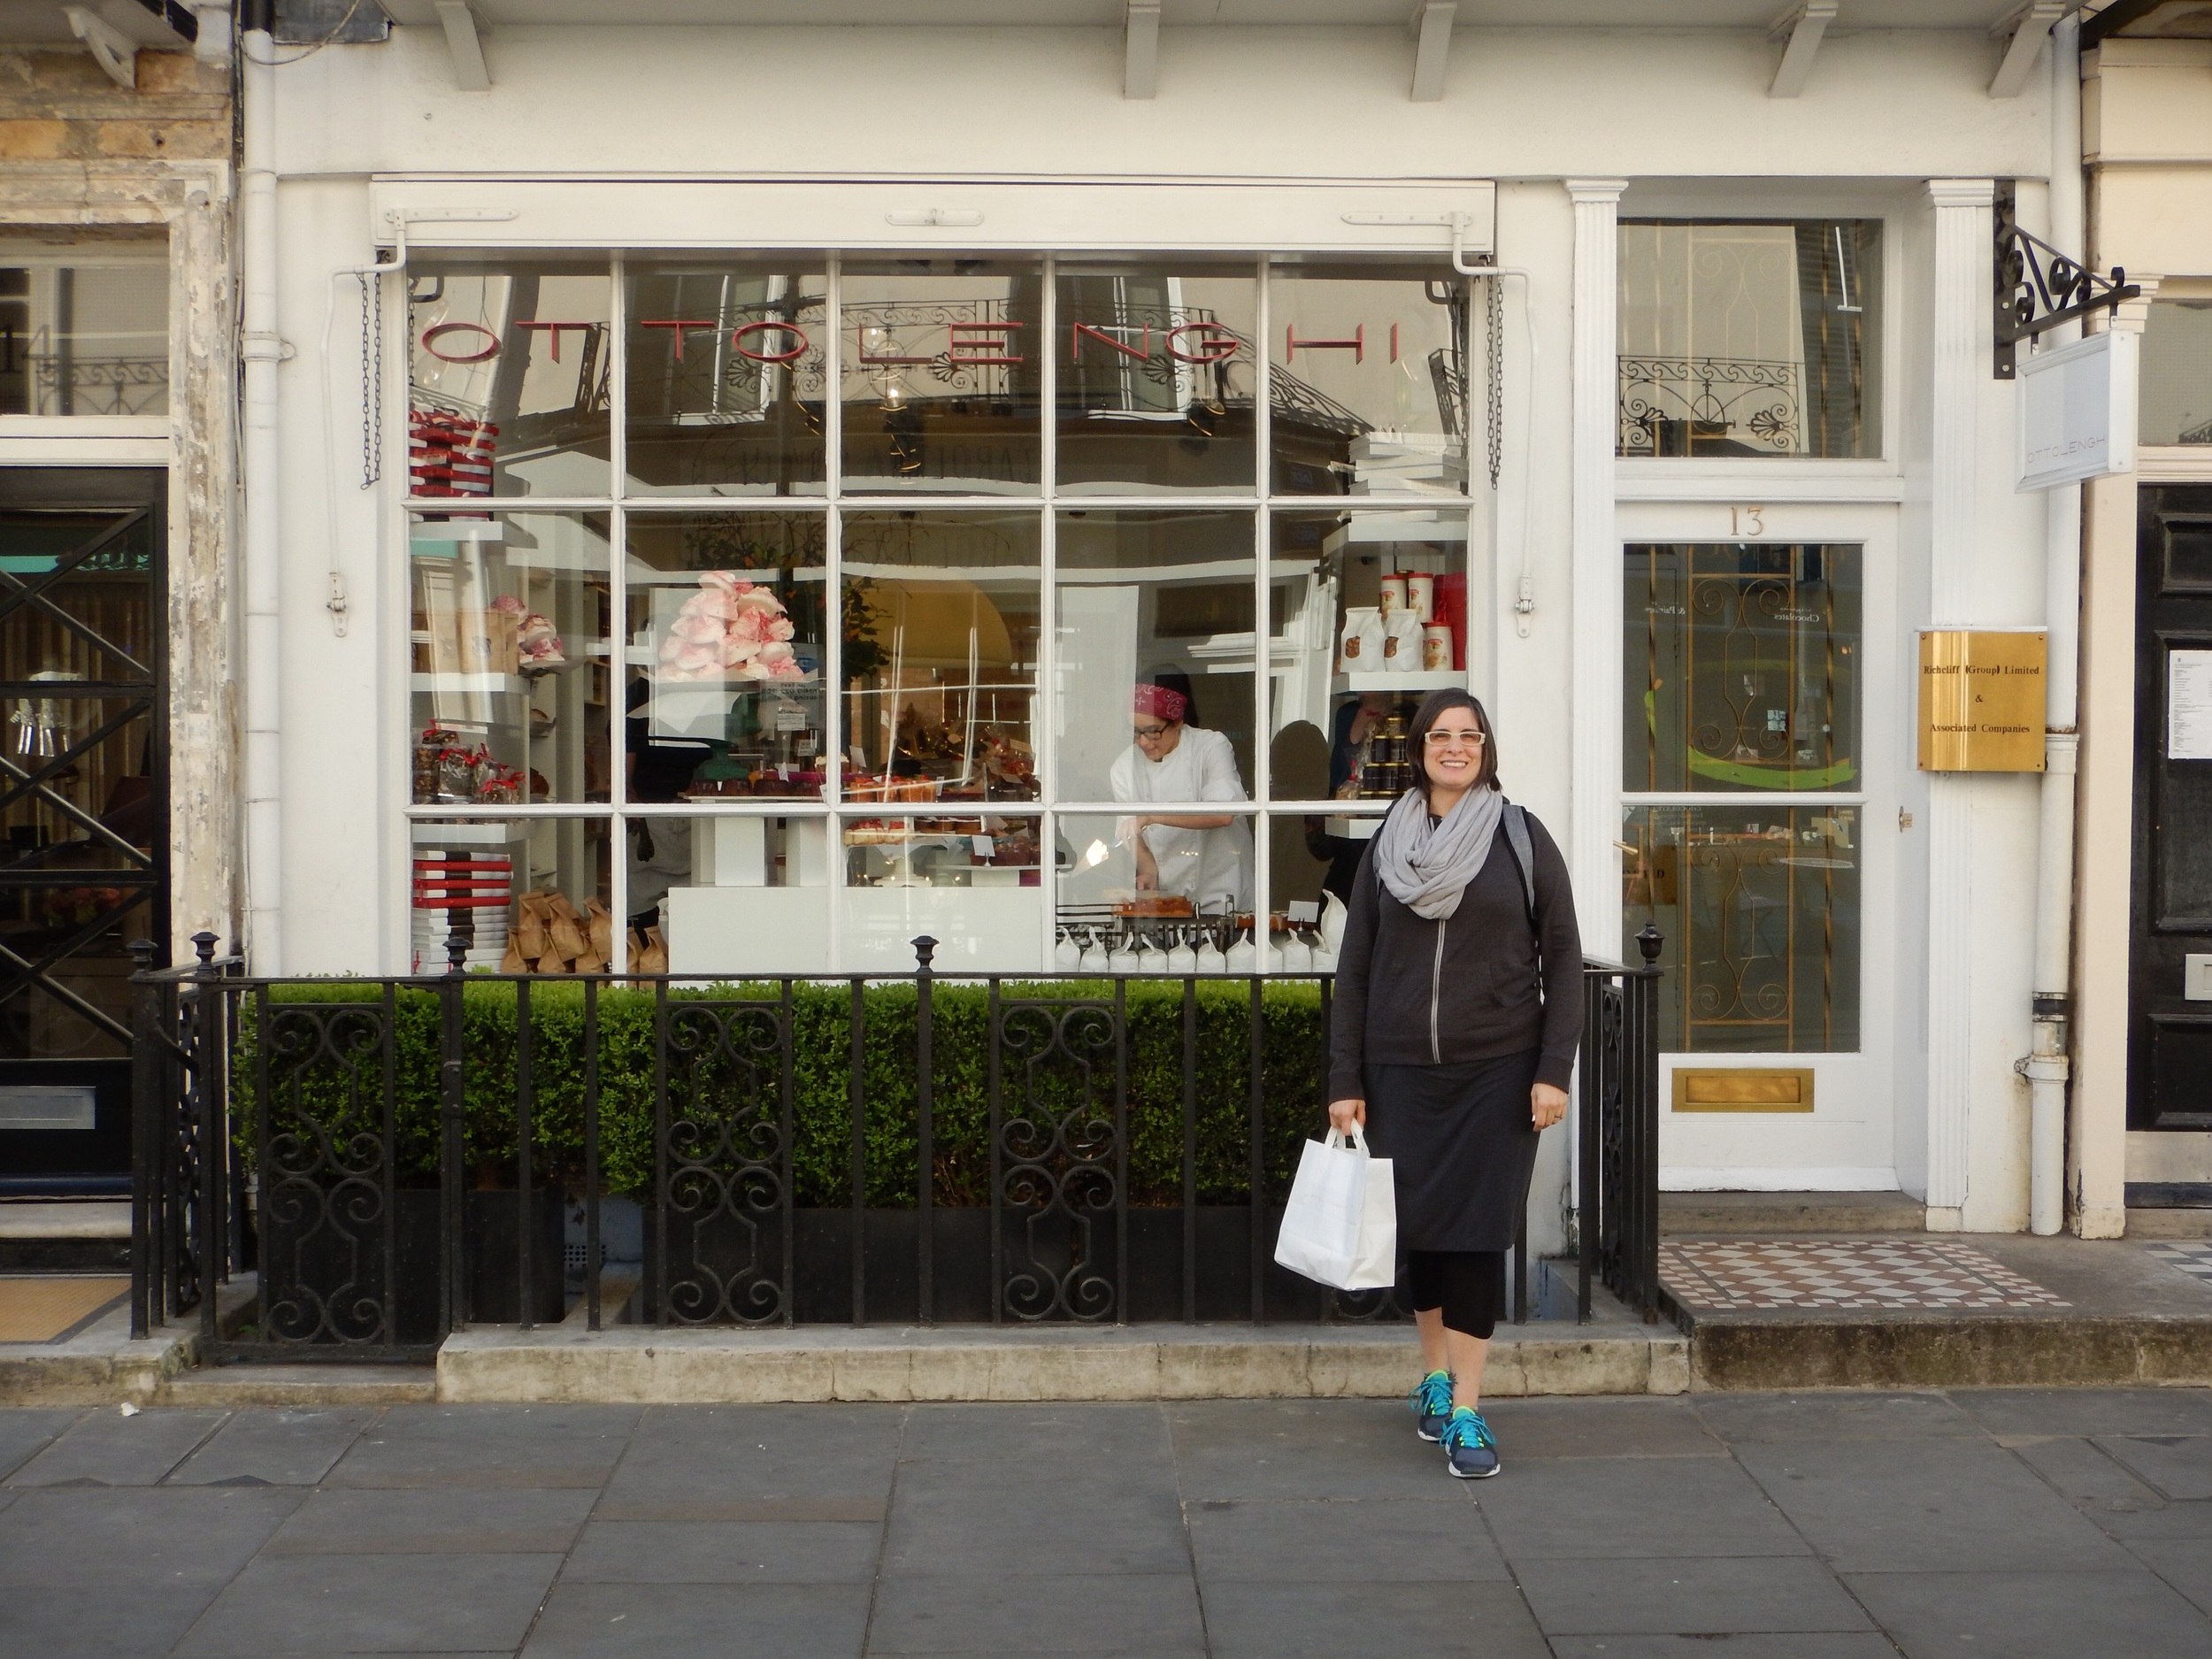 Small place, huge flavours: Ottolenghi. Excellent choice, Jenna!